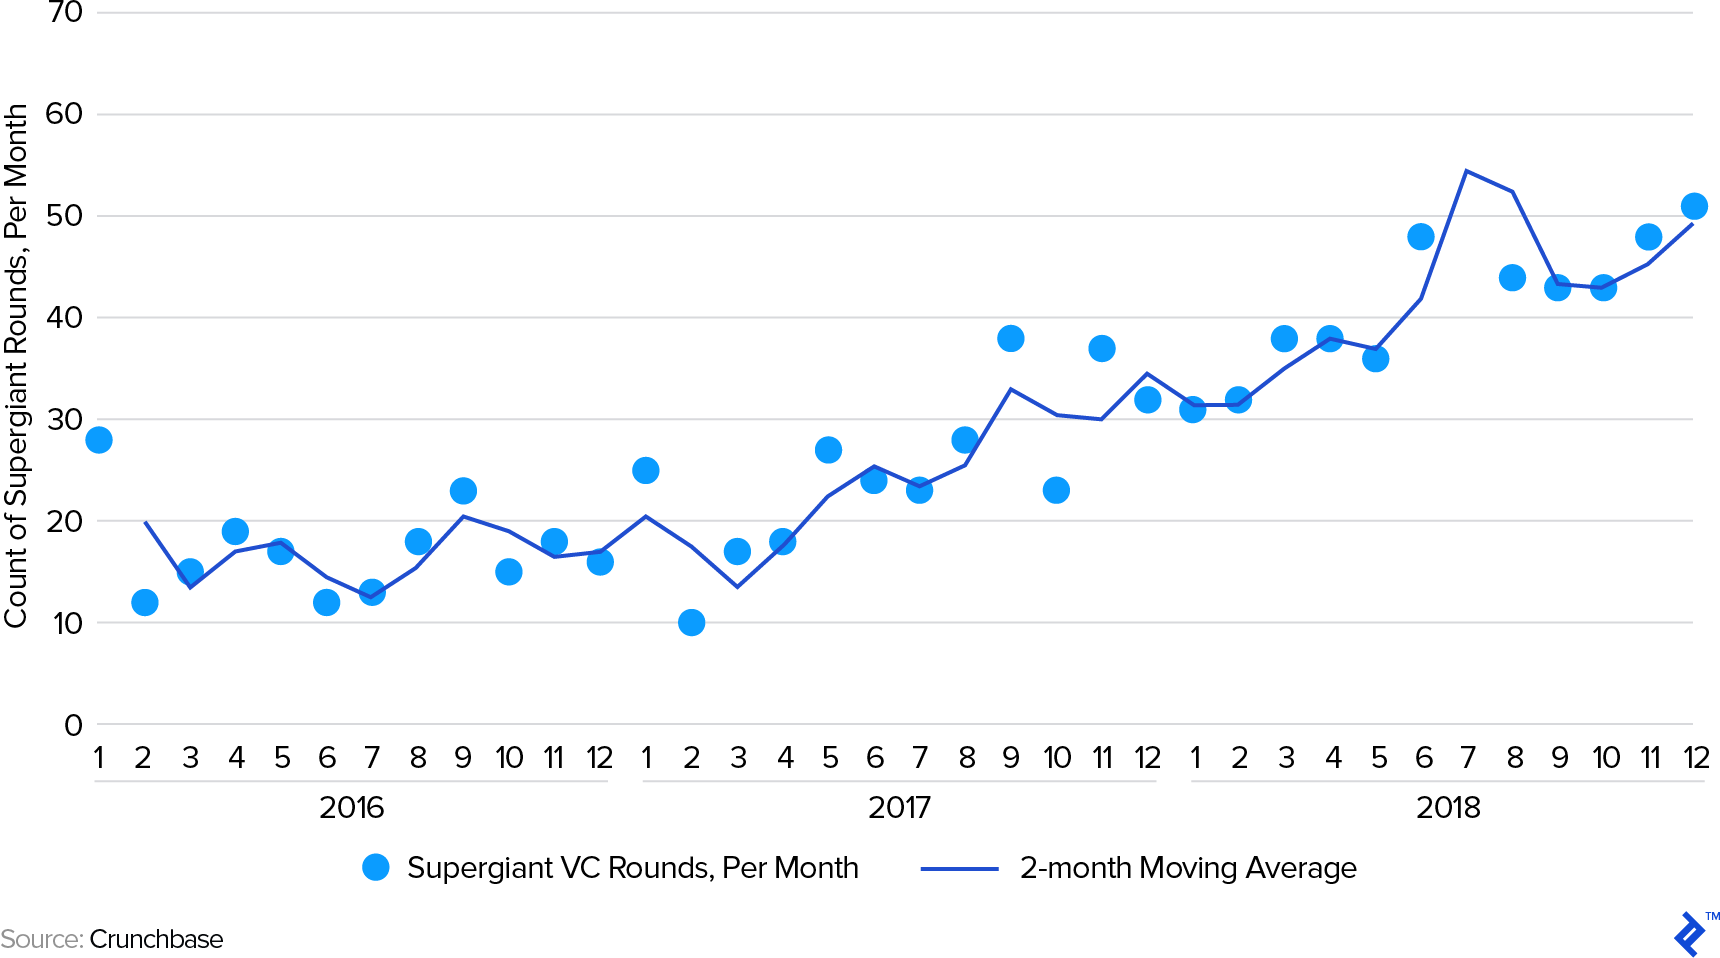 Supergiant VC Rounds 2016 - 2018: Number of VC Funding Rounds of Over $100m